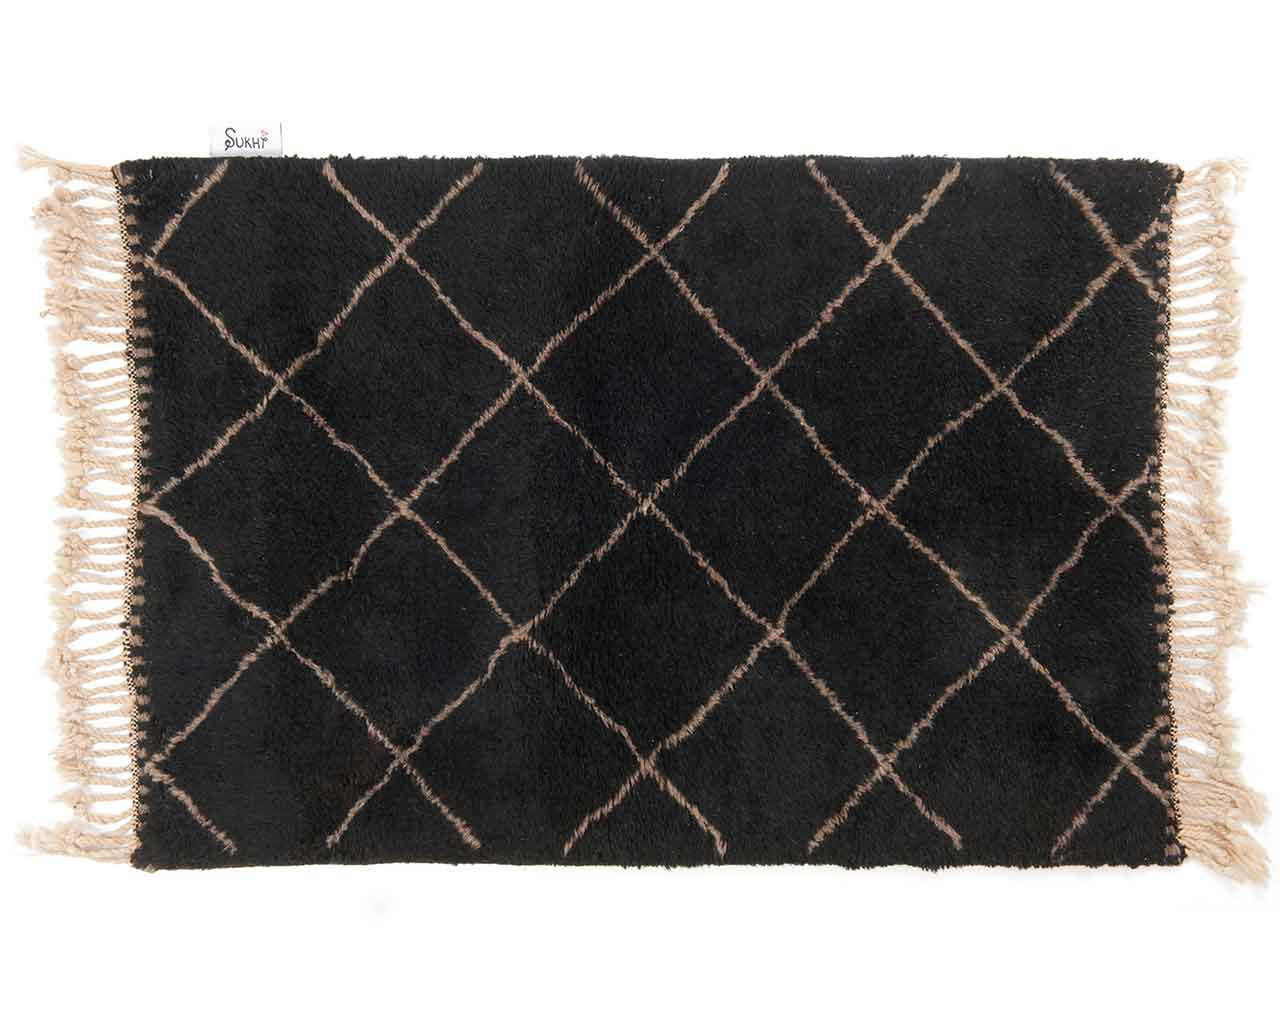 grey diamond pattern beni ourain carpet black colors 2